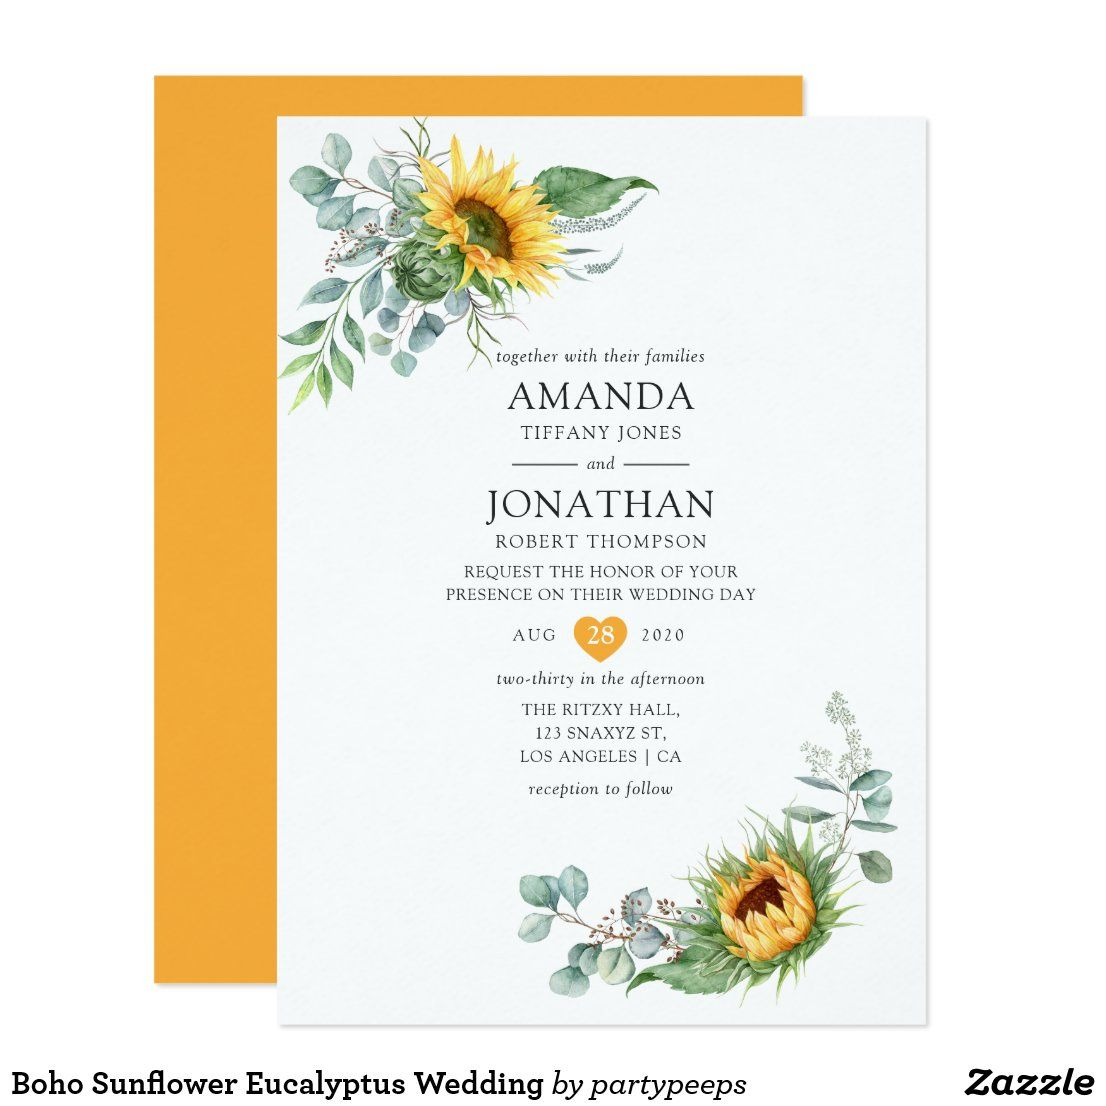 Boho Sunflower Eucalyptus Wedding Invitation